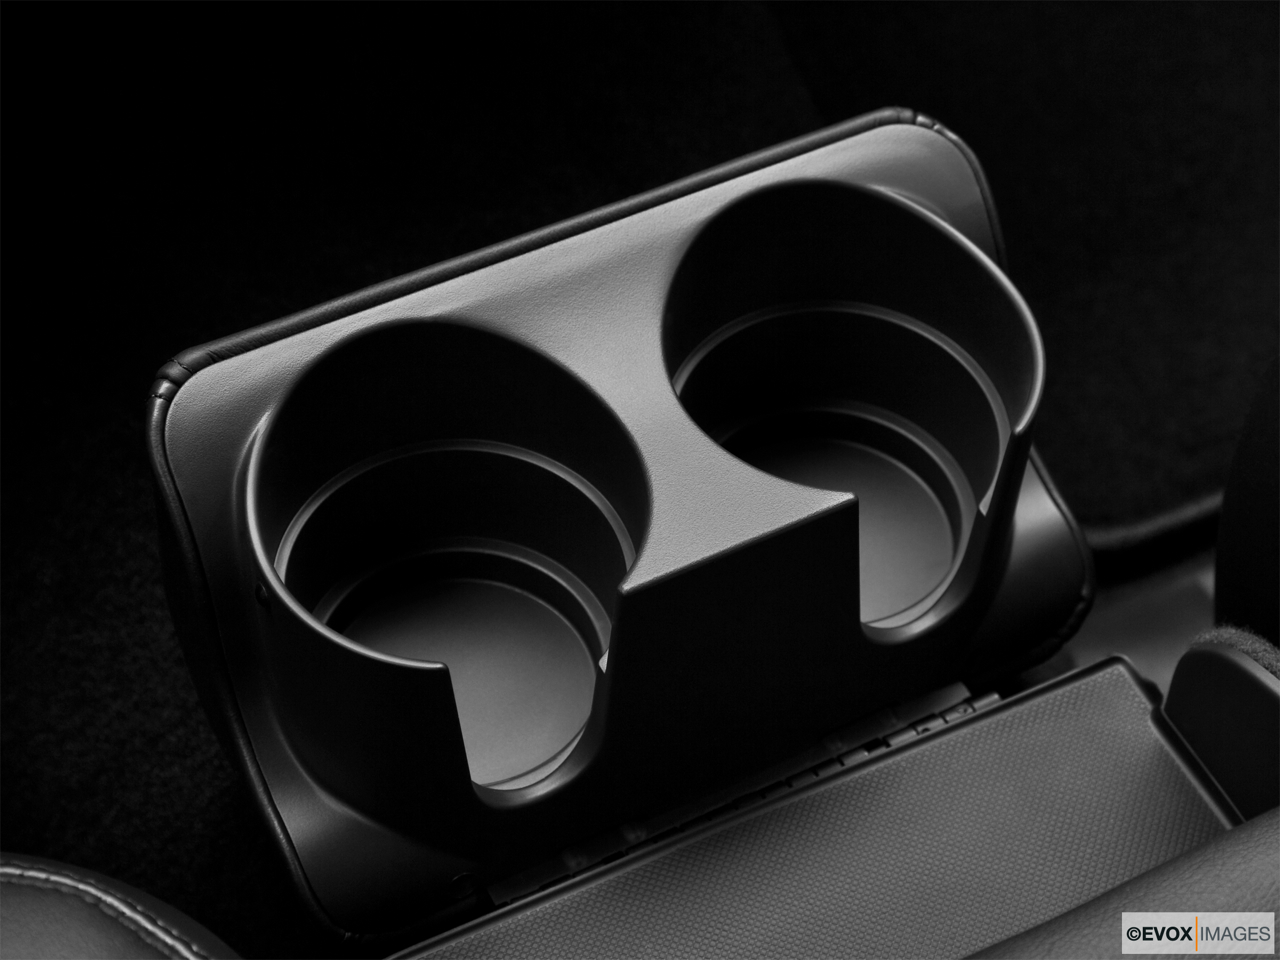 2010 Lincoln Town Car Signature L Cup holders.